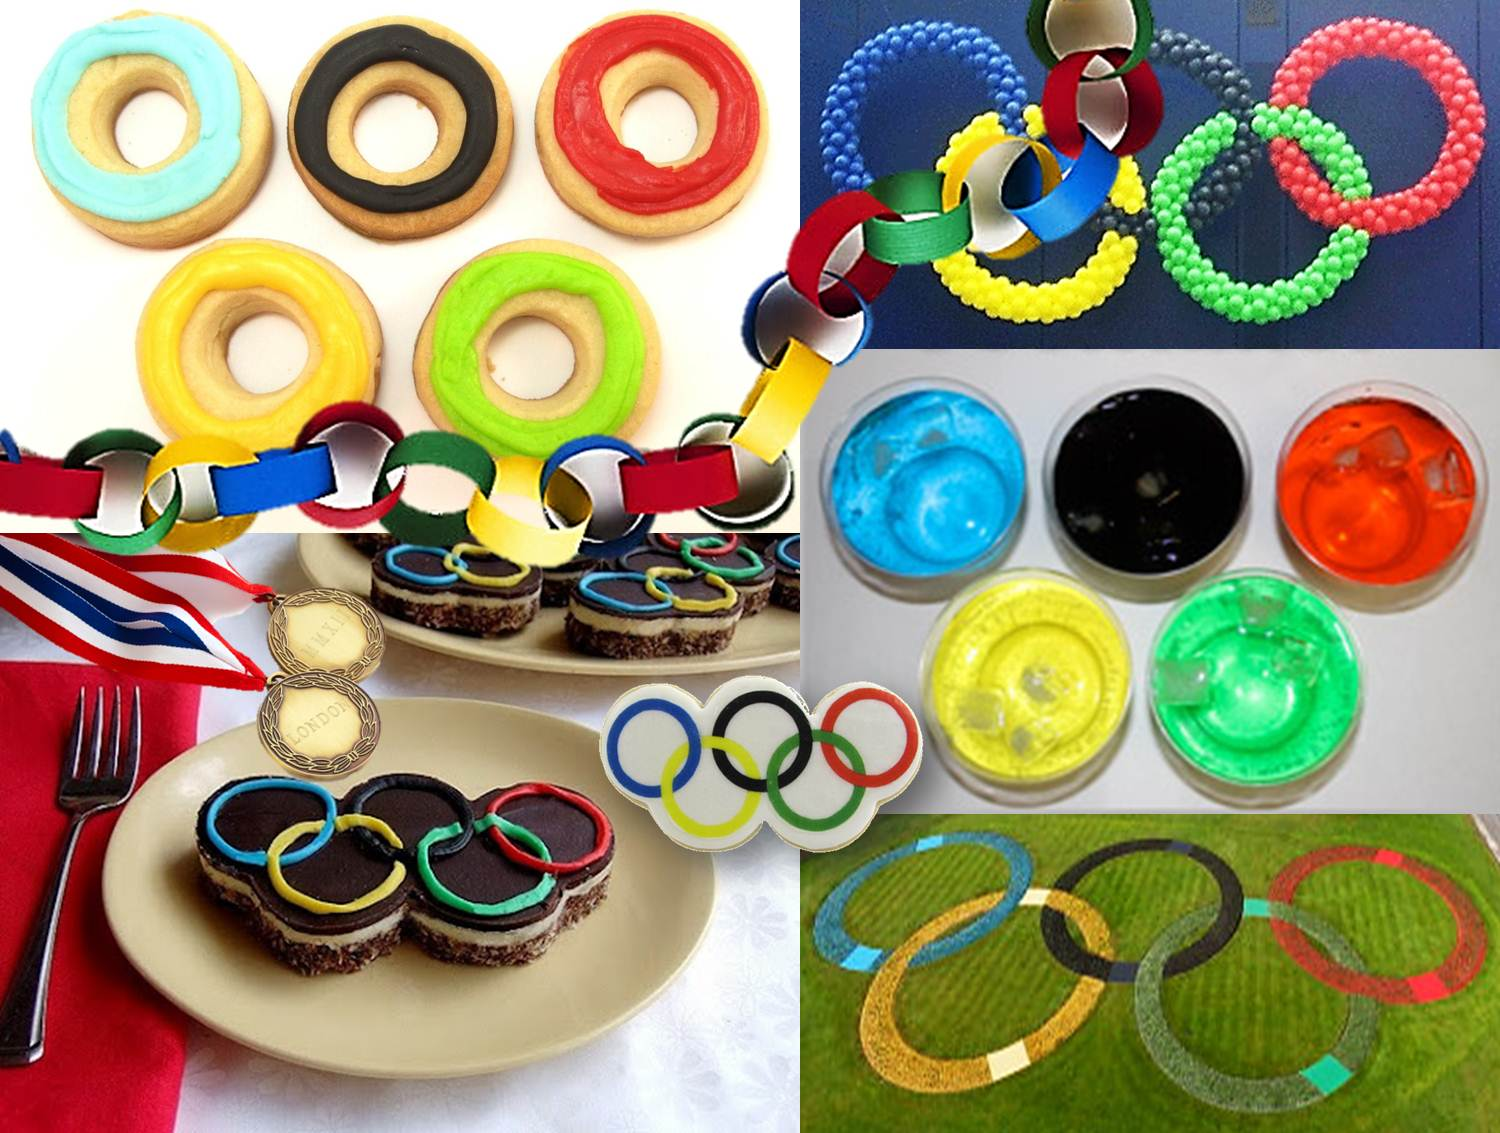 olympic-rings-montage-1